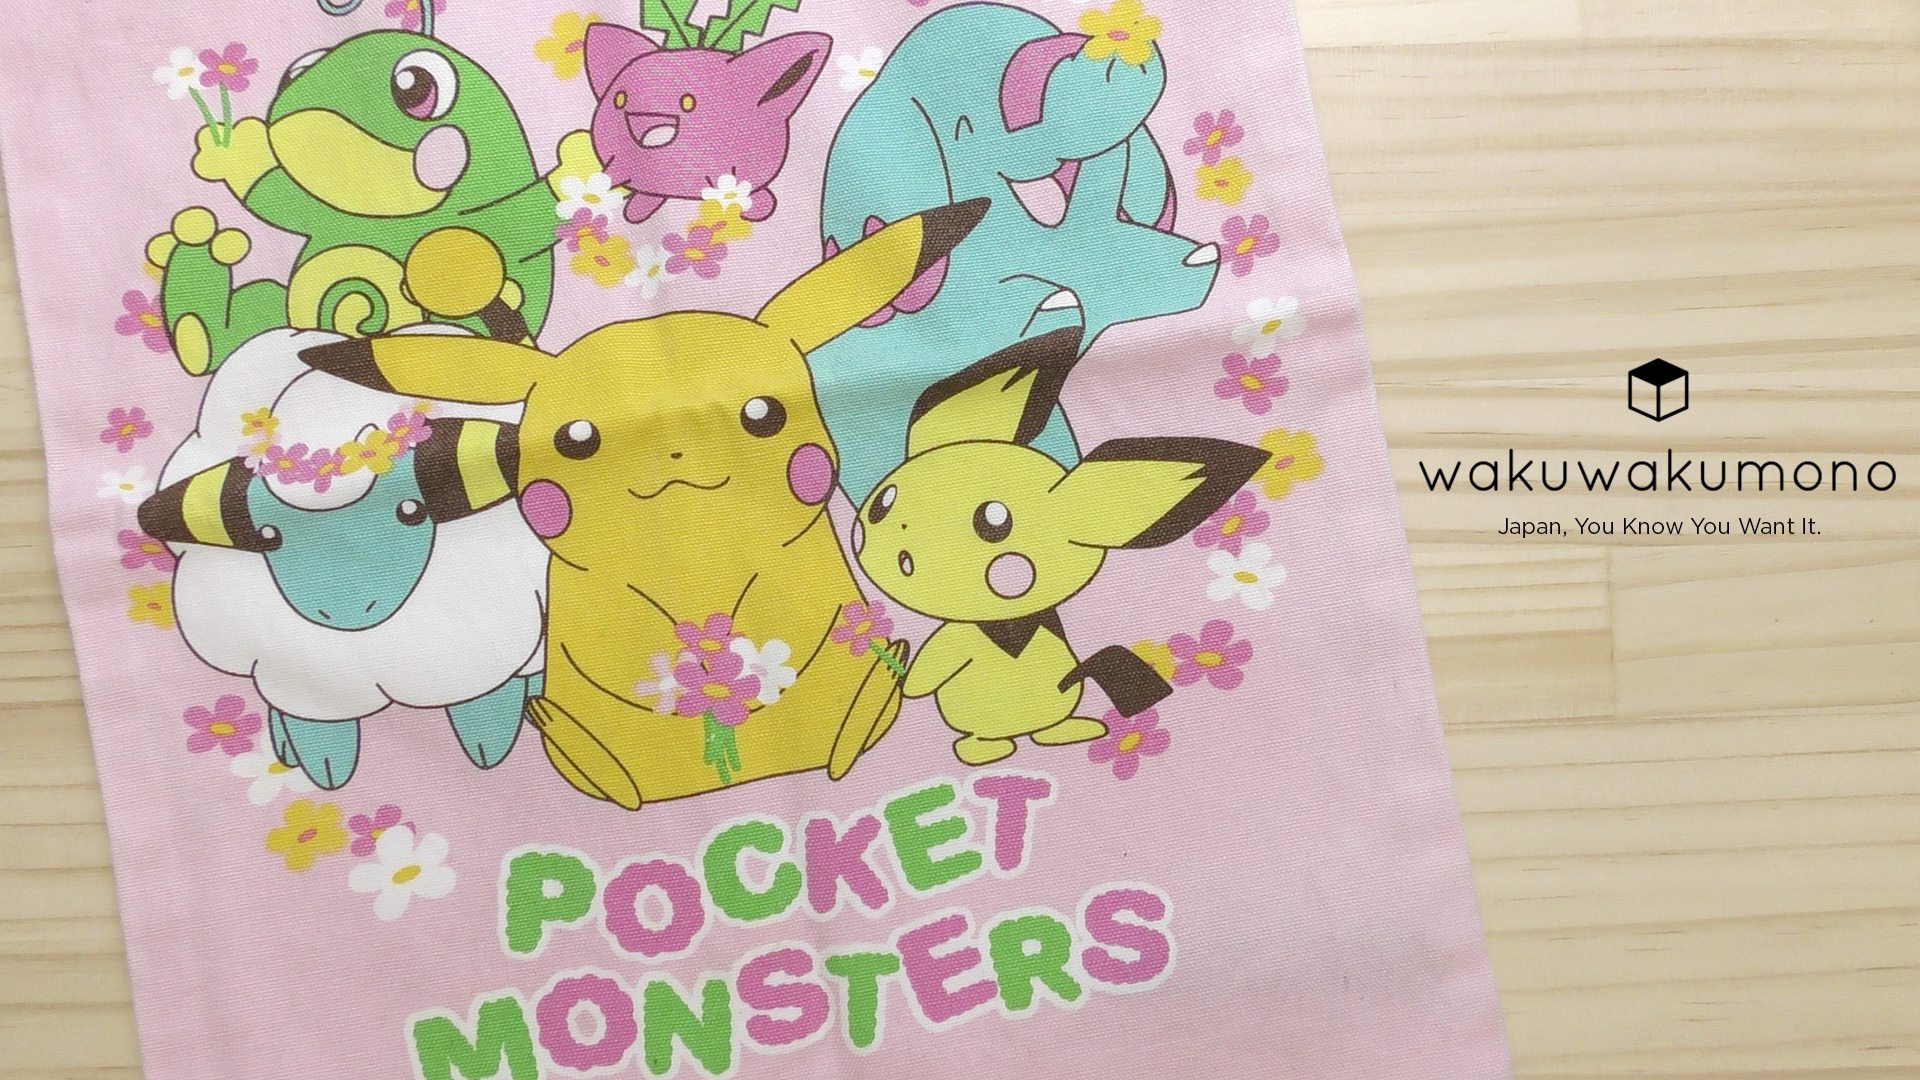 pocket-monsters-bag-mercari-japan